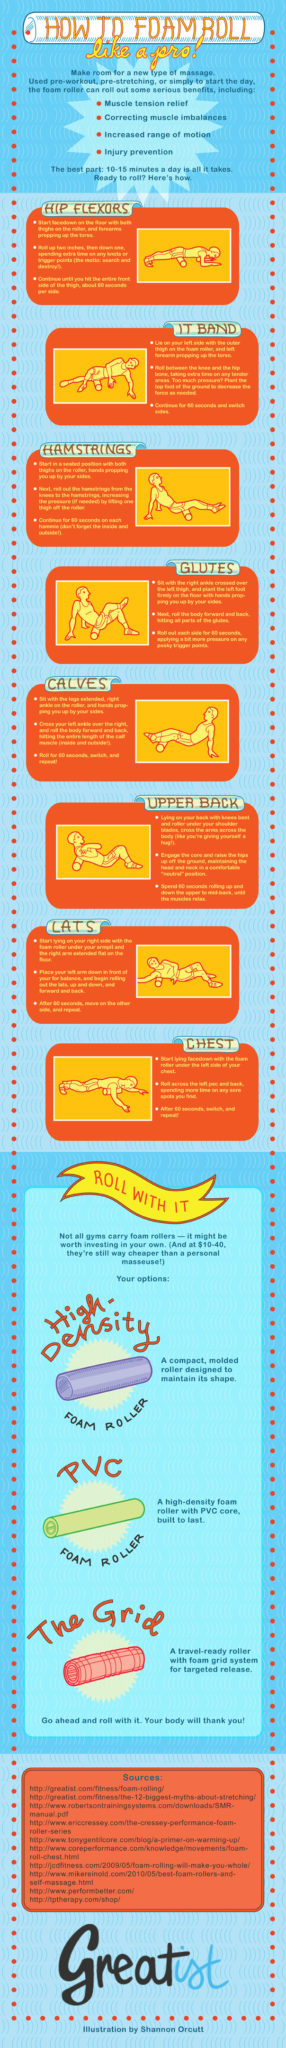 How to use a foam roller